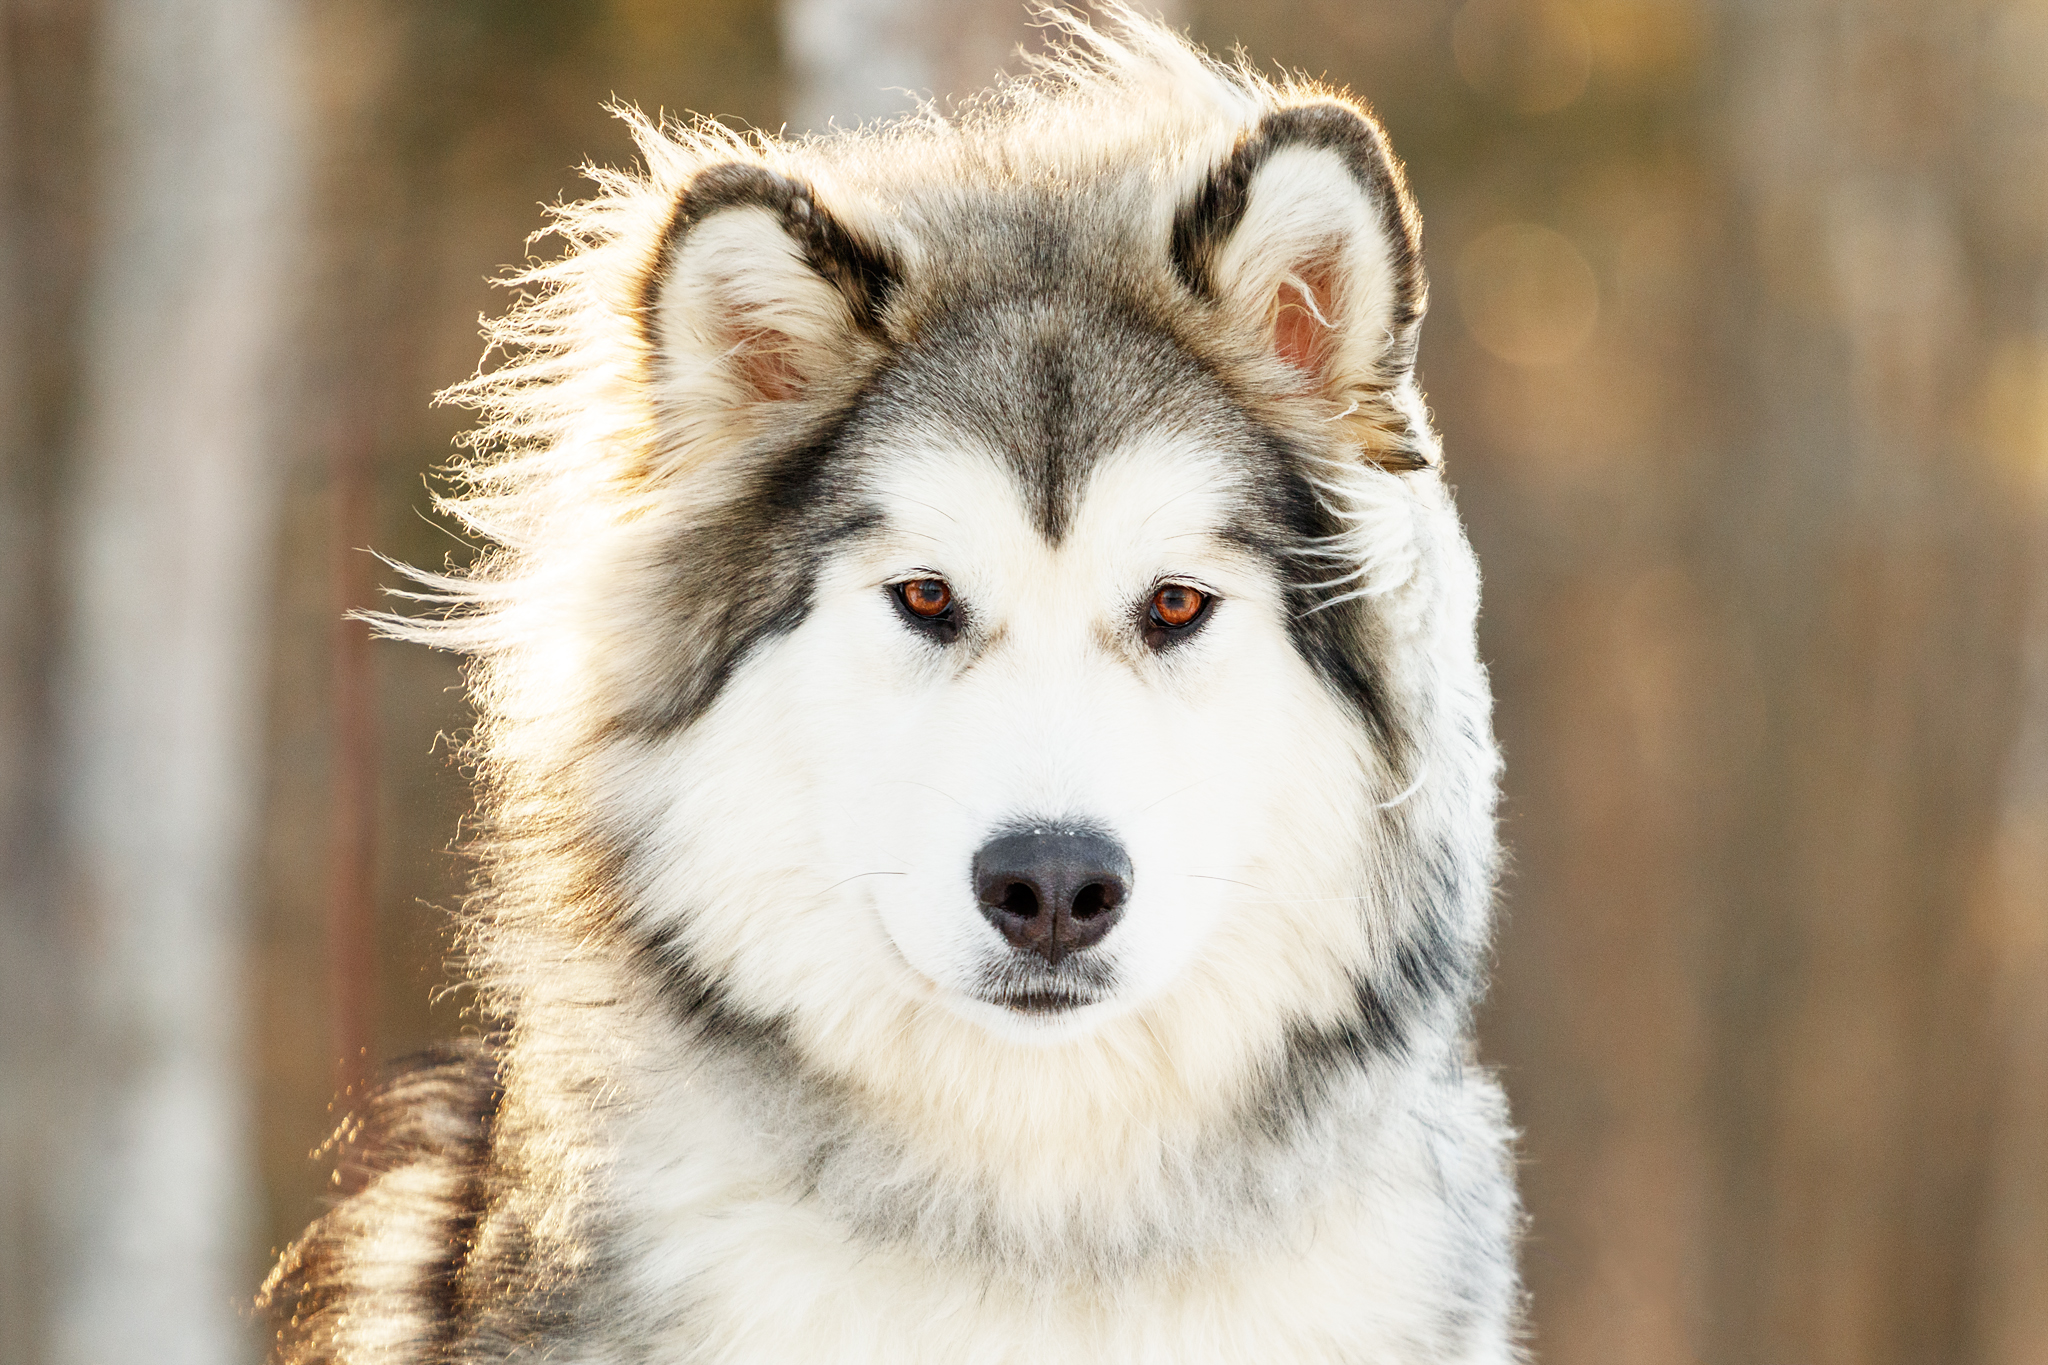 malamute_halifax_dog_photos.jpg